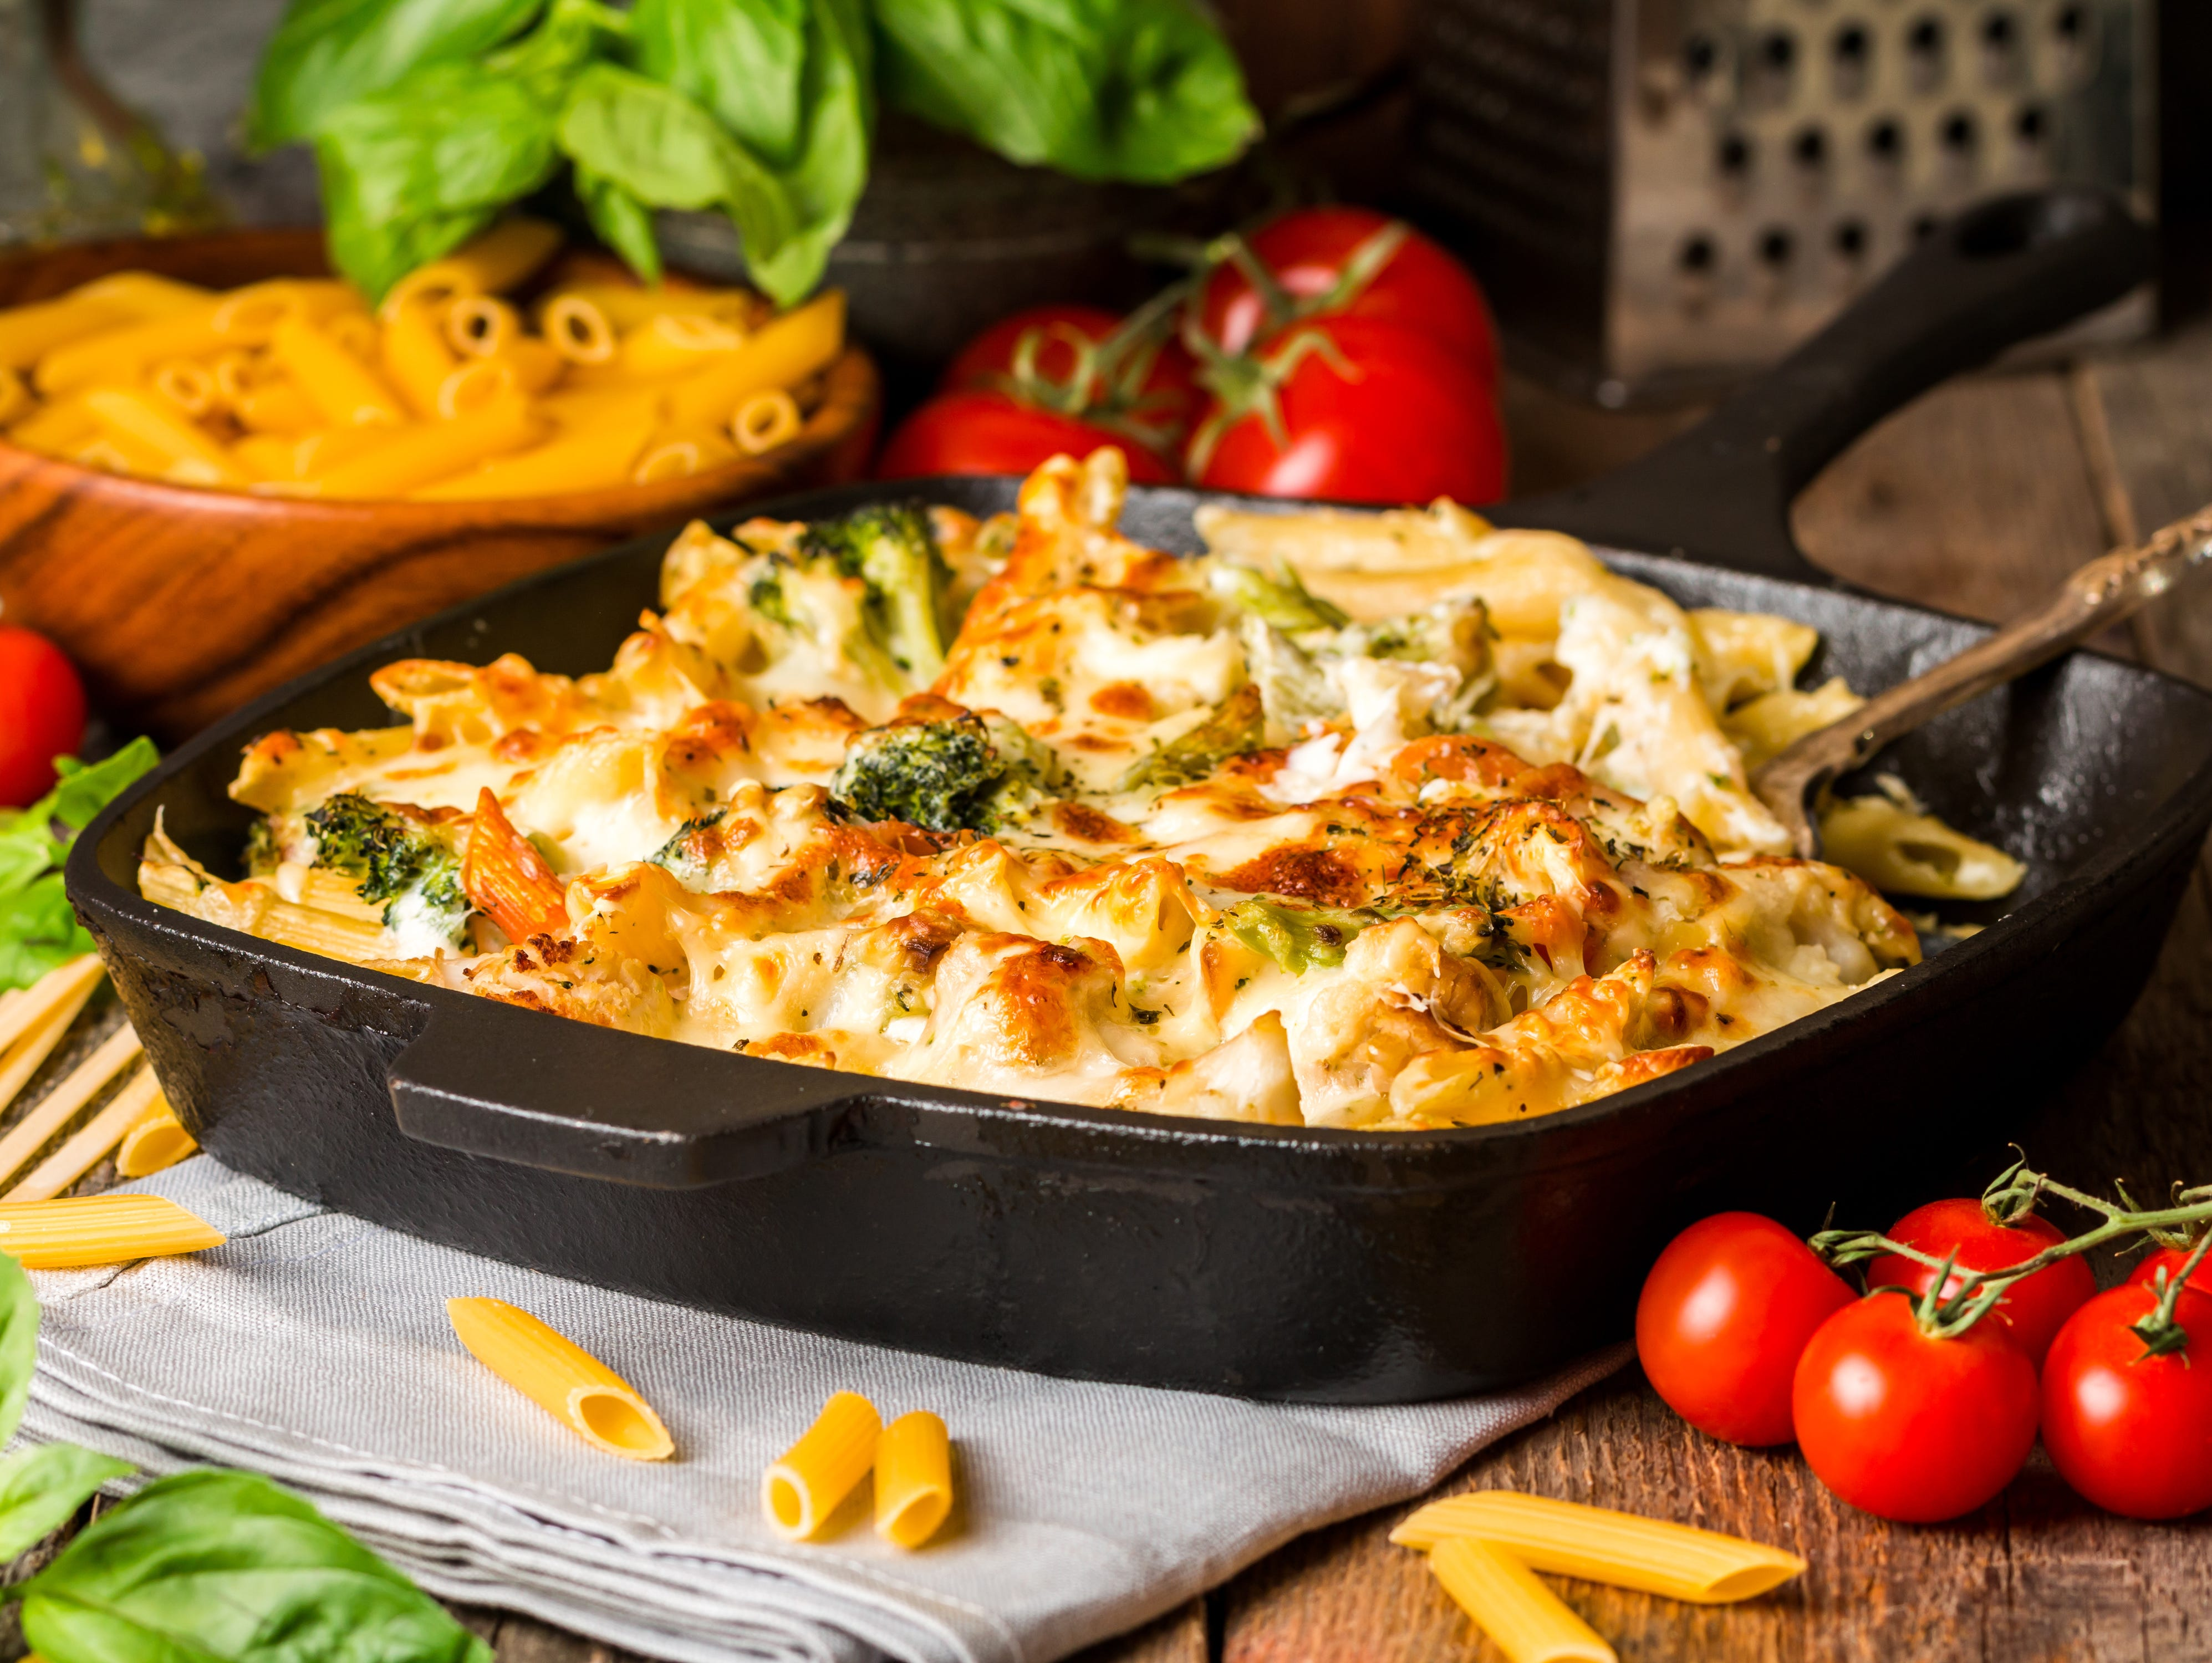 Crowd-pleasing casserole recipes you don't want to miss.